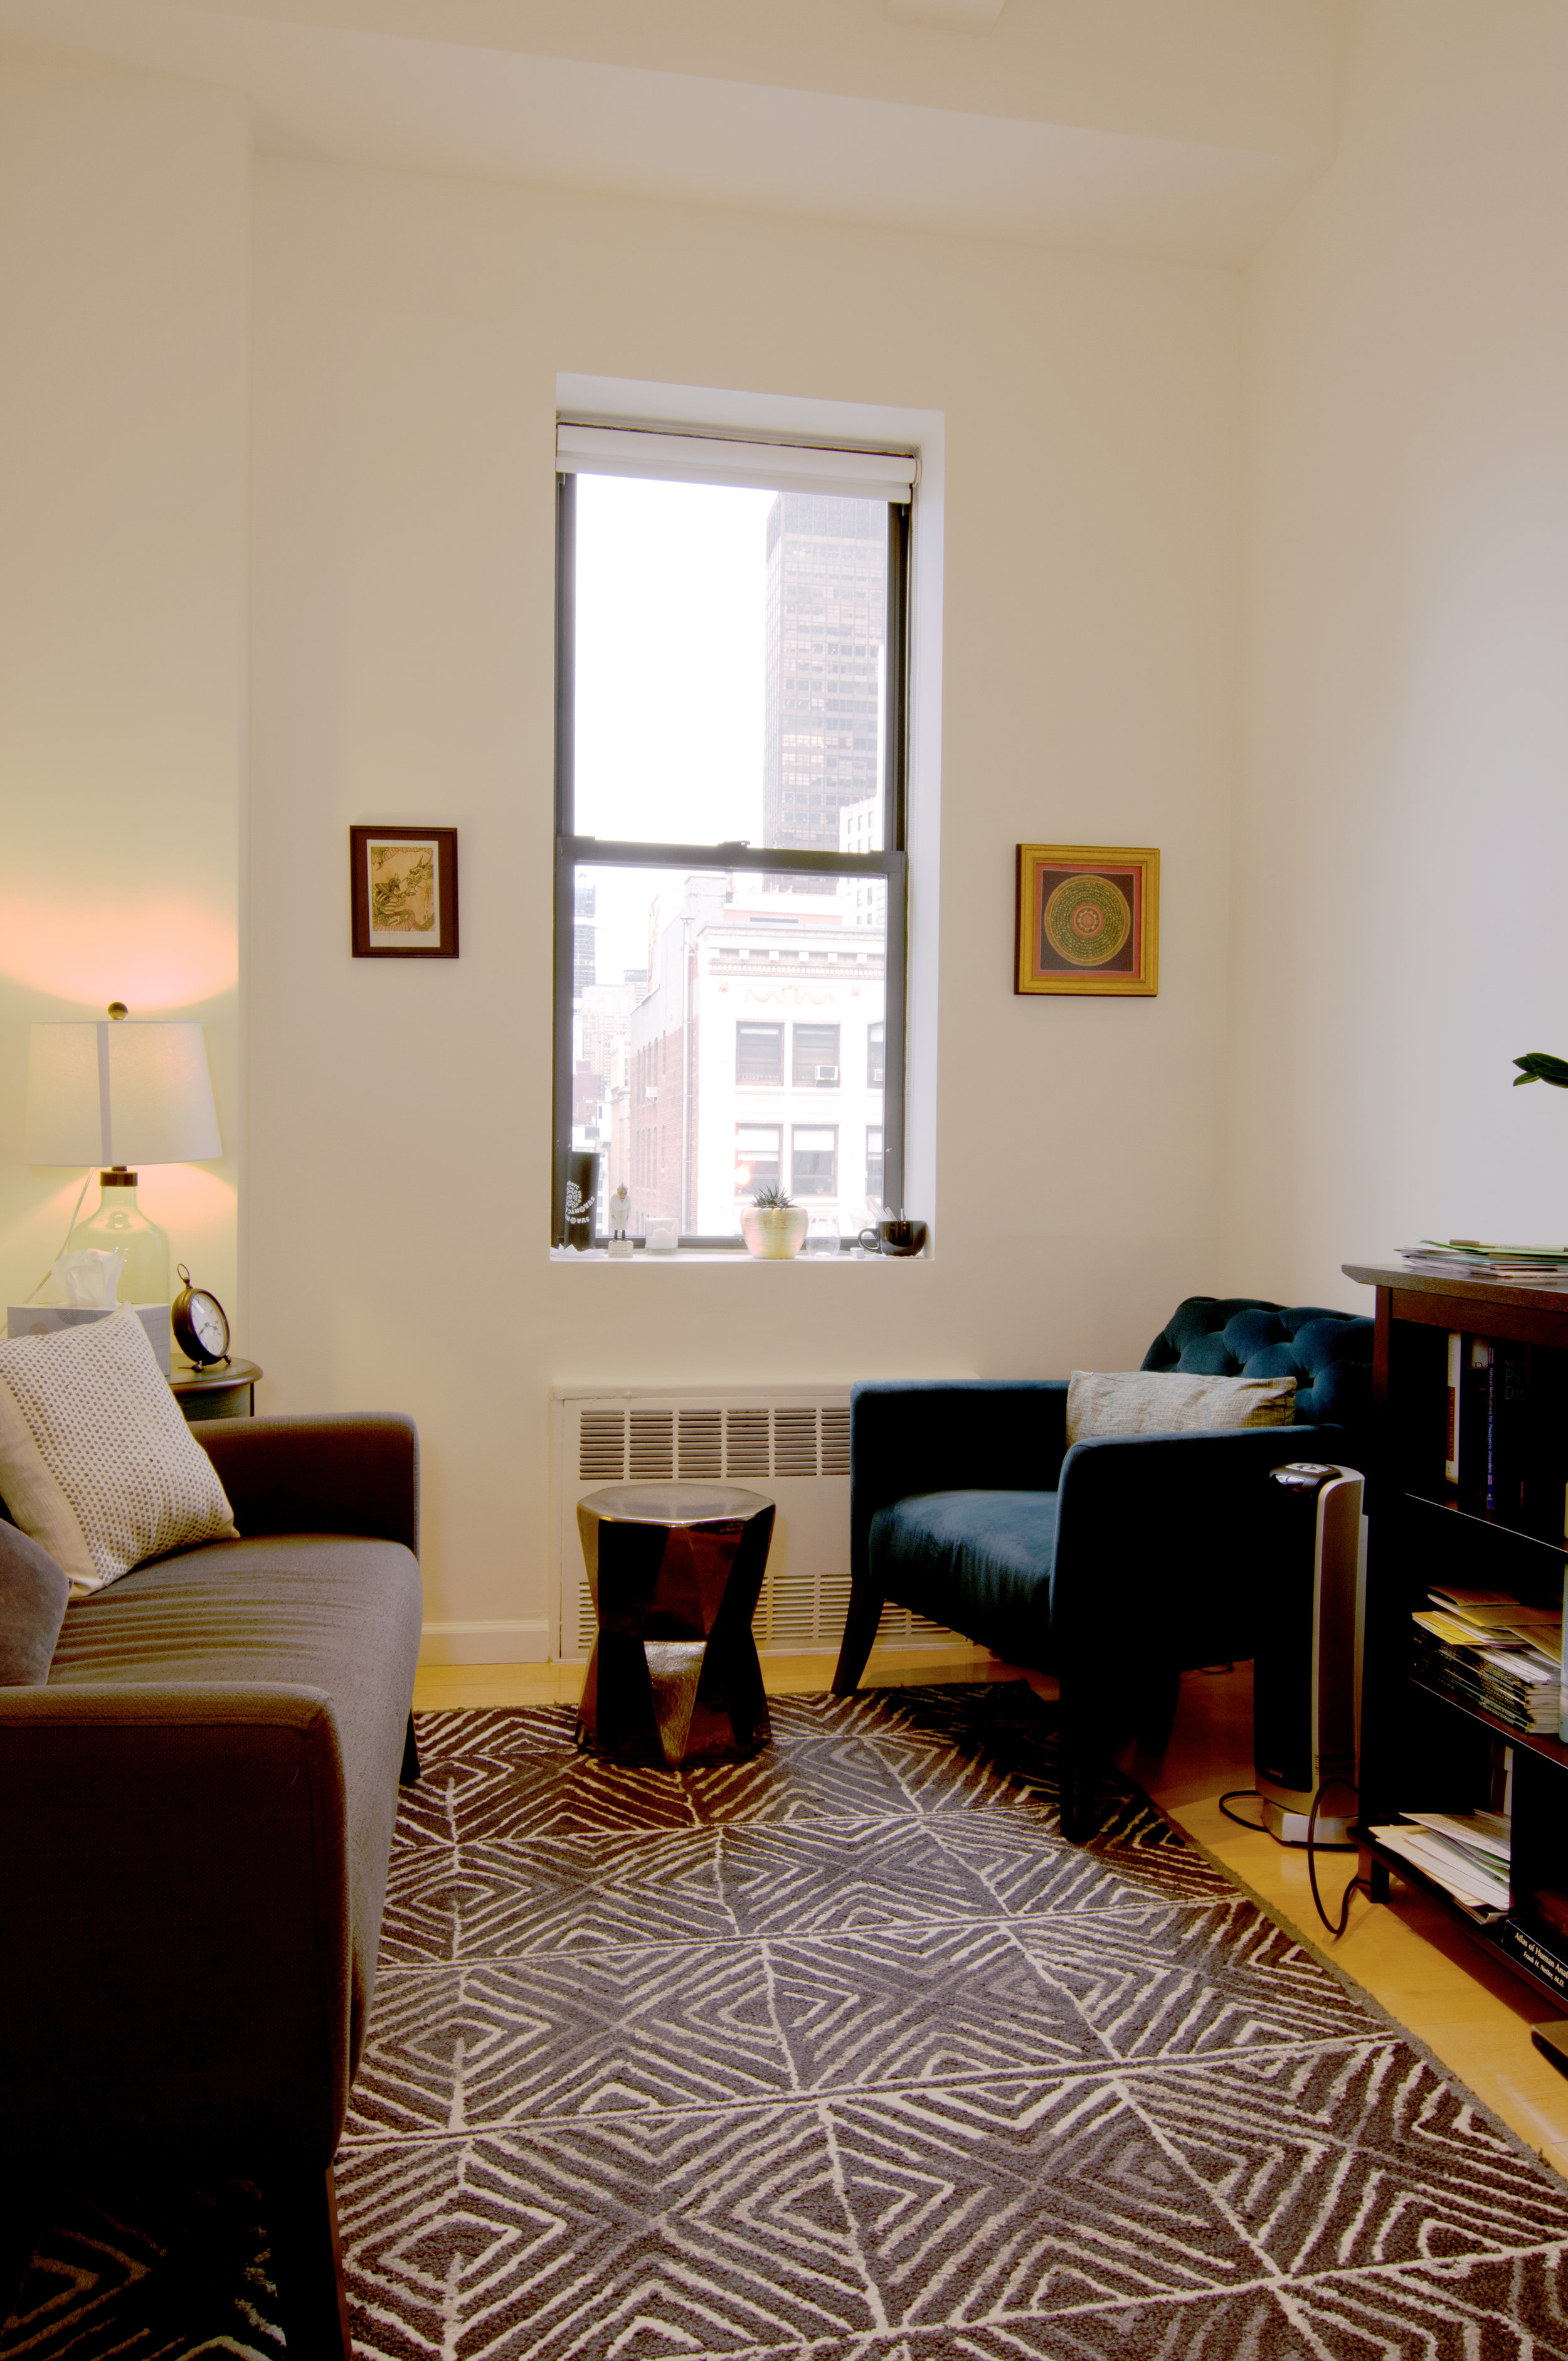 serene-offices-therapy-office-flatiron-21st-street-room-2.jpg